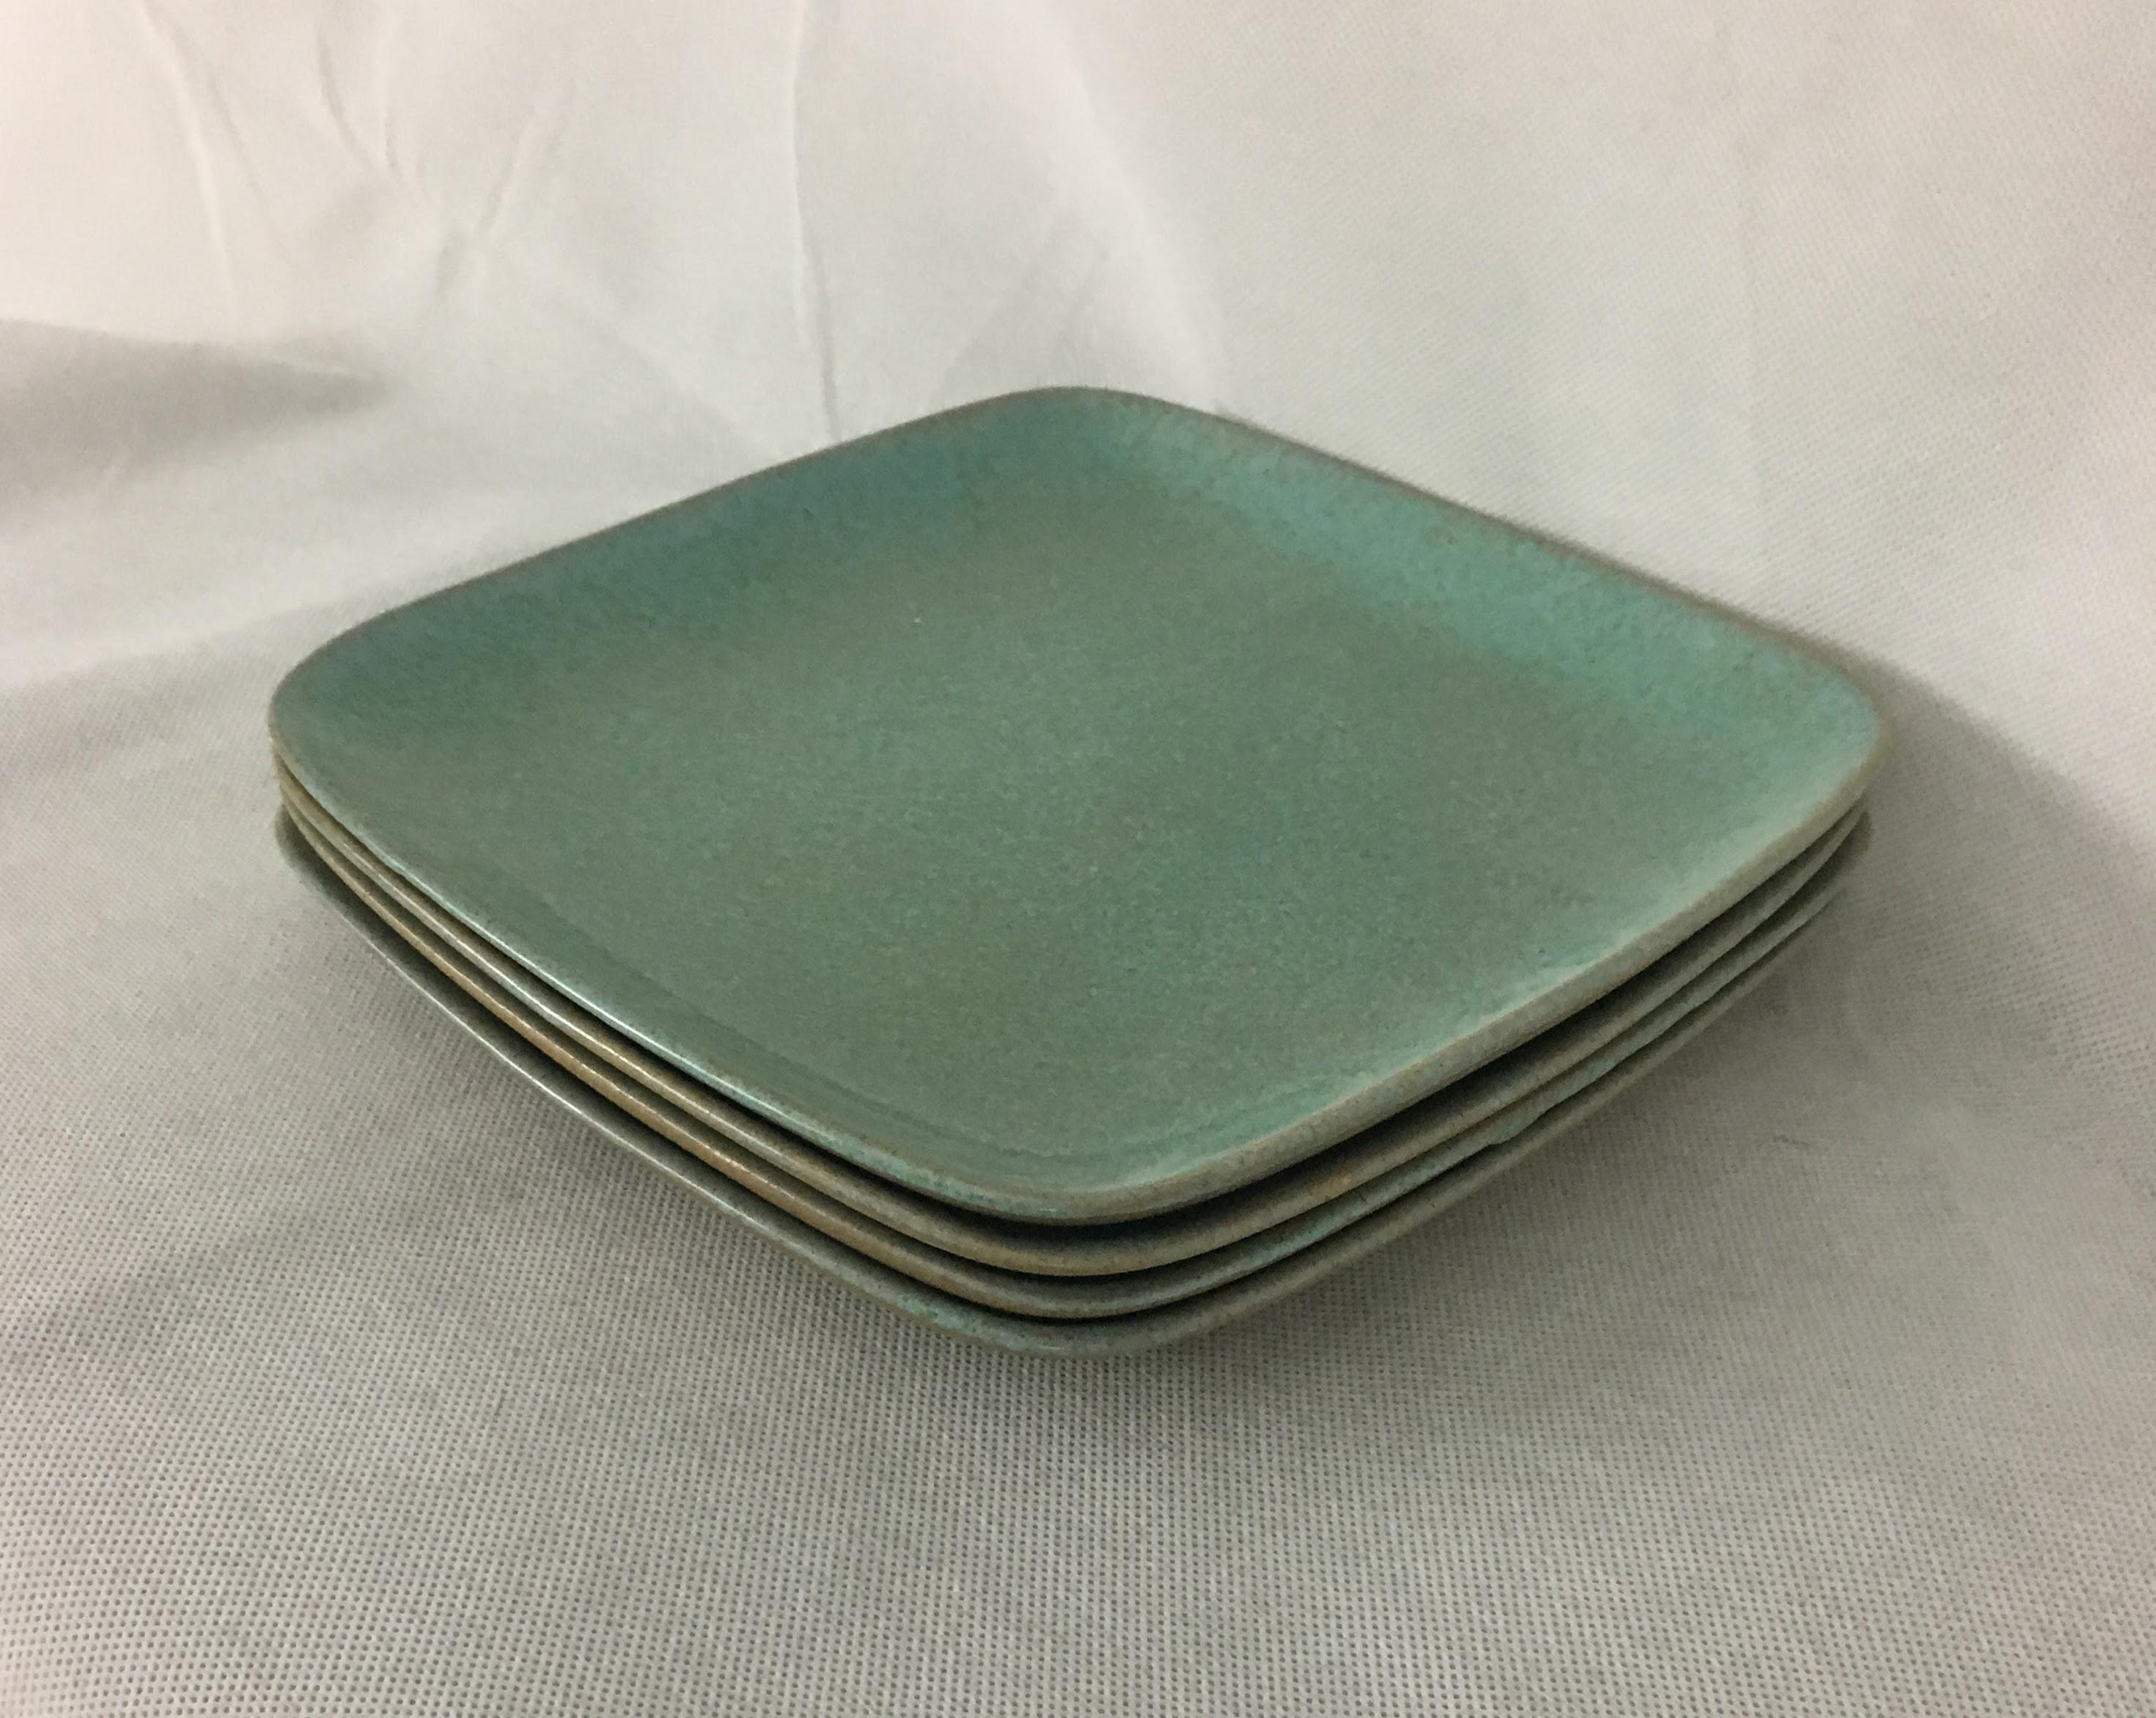 Glidden Matrix Turquoise Small Dinner Plates - Set of 4 - Image 5 of 5  sc 1 st  Chairish : small dinner plate - pezcame.com